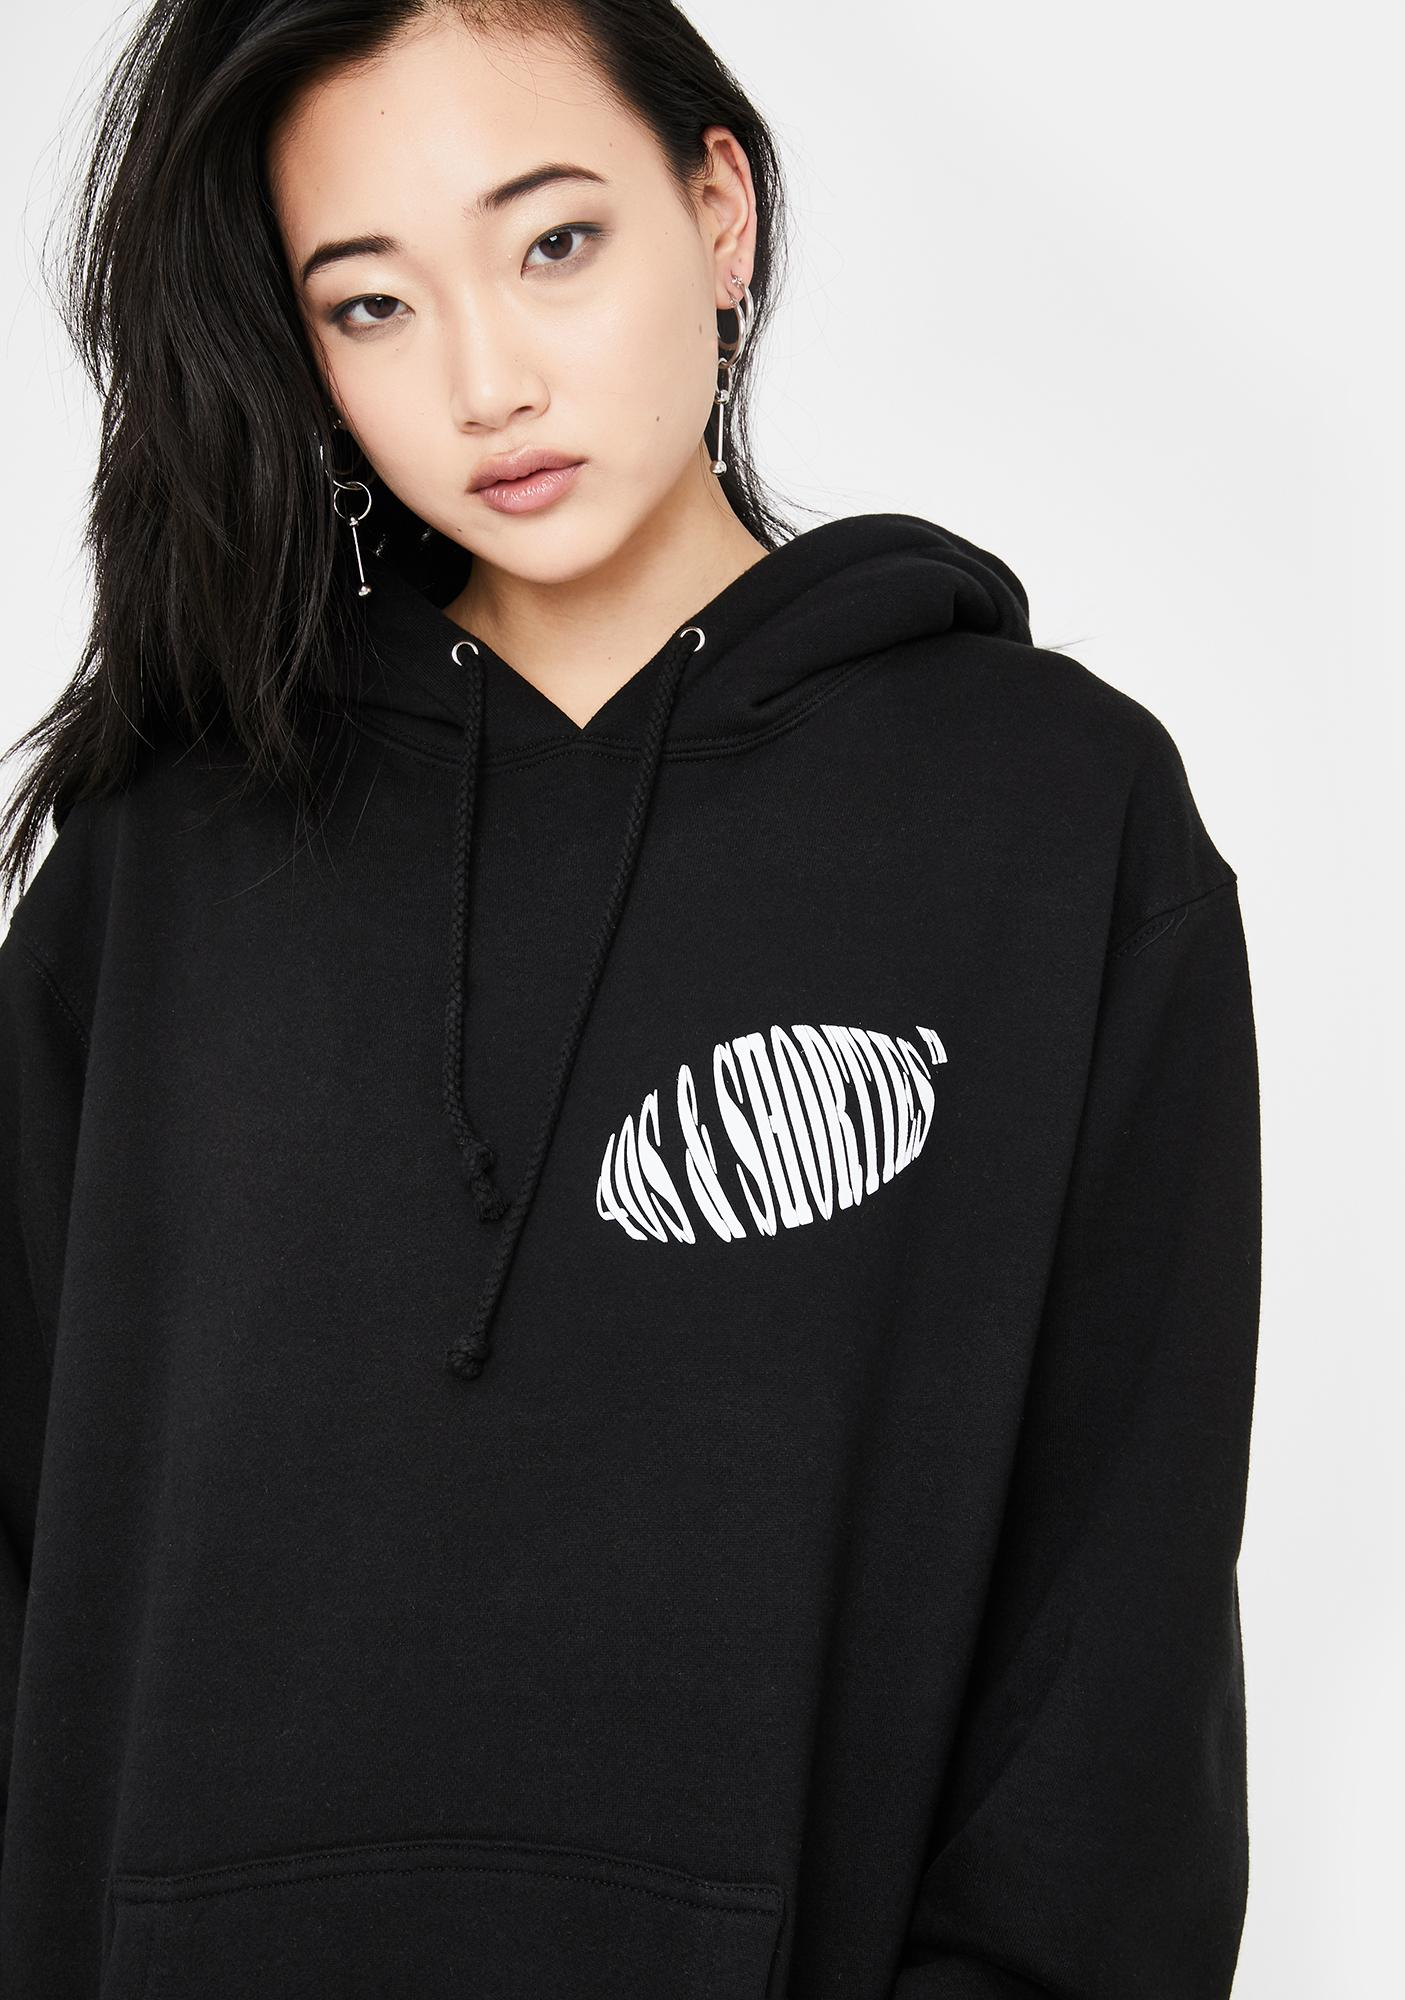 40s & Shorties Working Title Graphic Hoodie